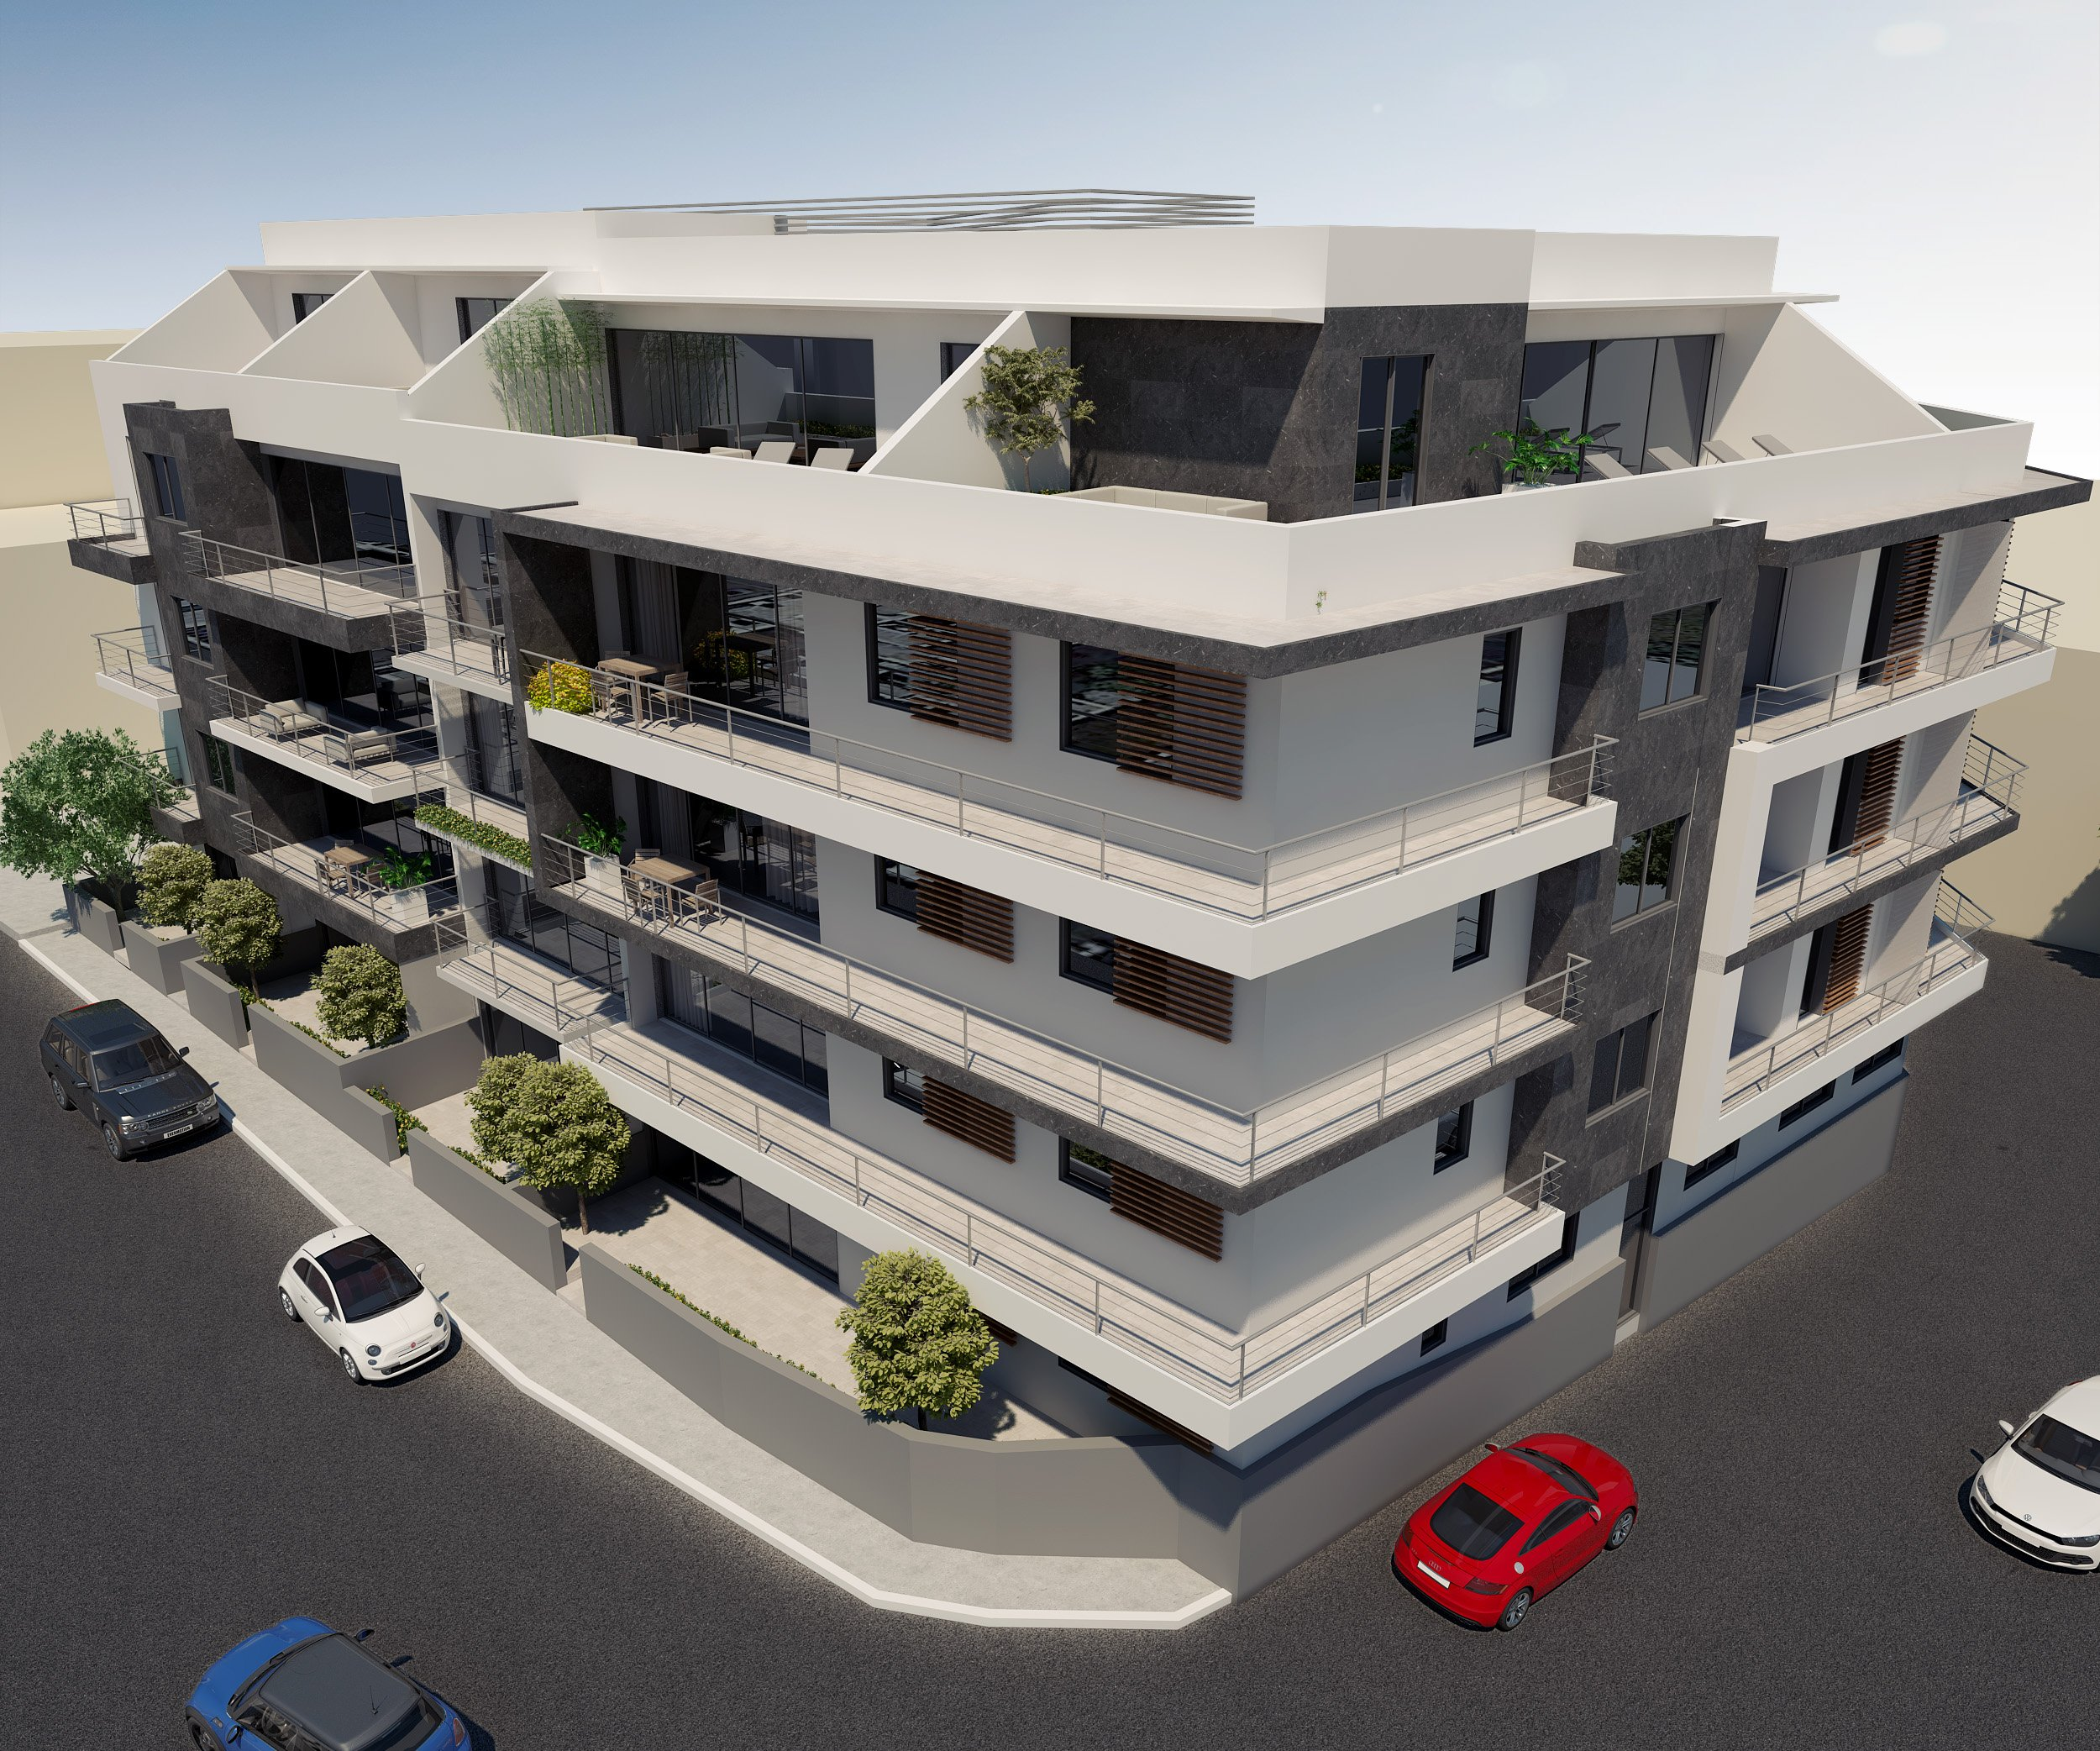 Malta property: Development